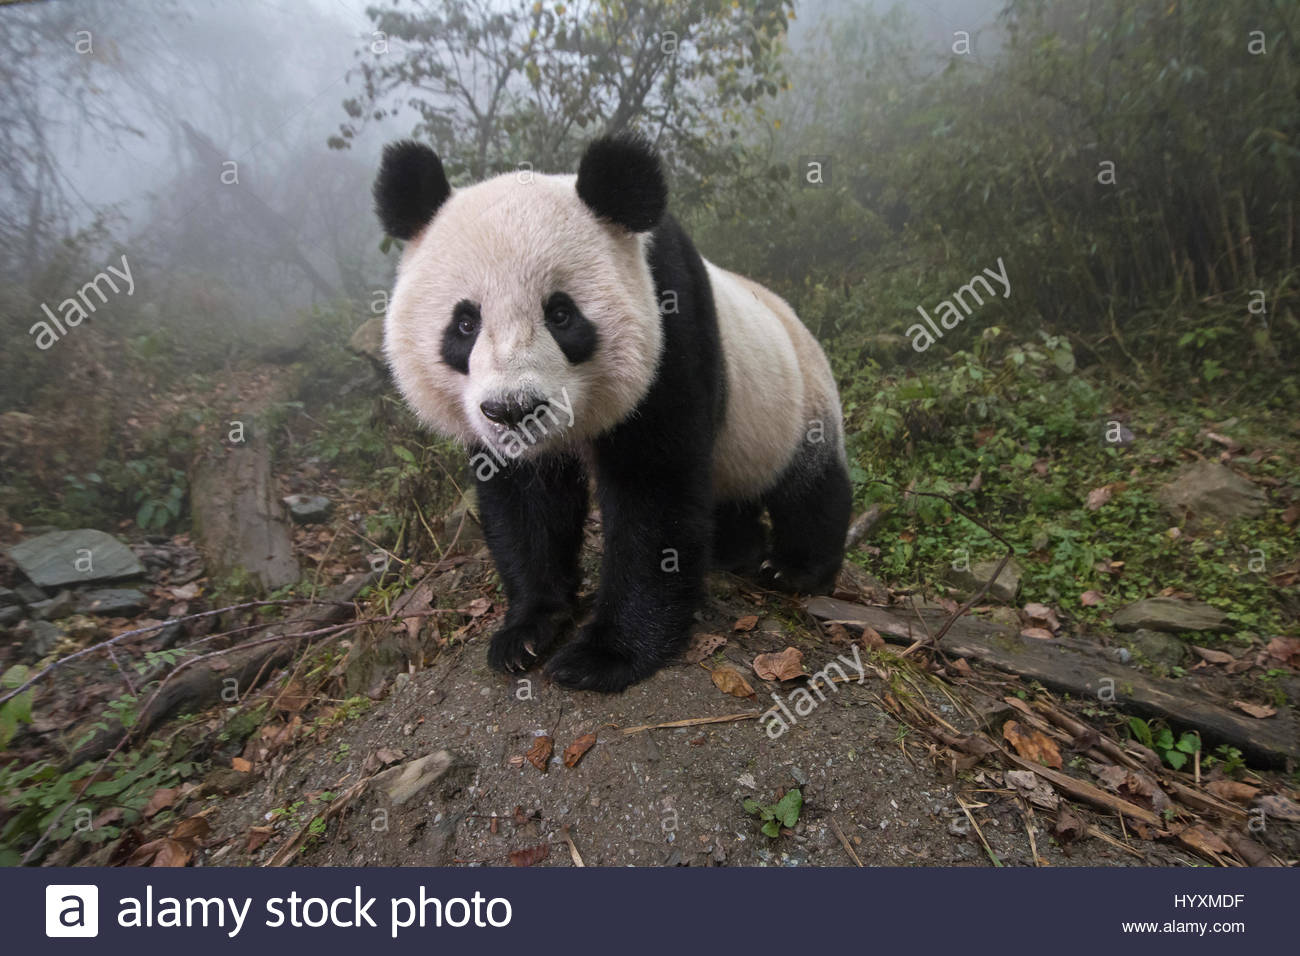 A giant panda inside its enclosure at the Wolong China Conservation and Research Center. - Stock Image